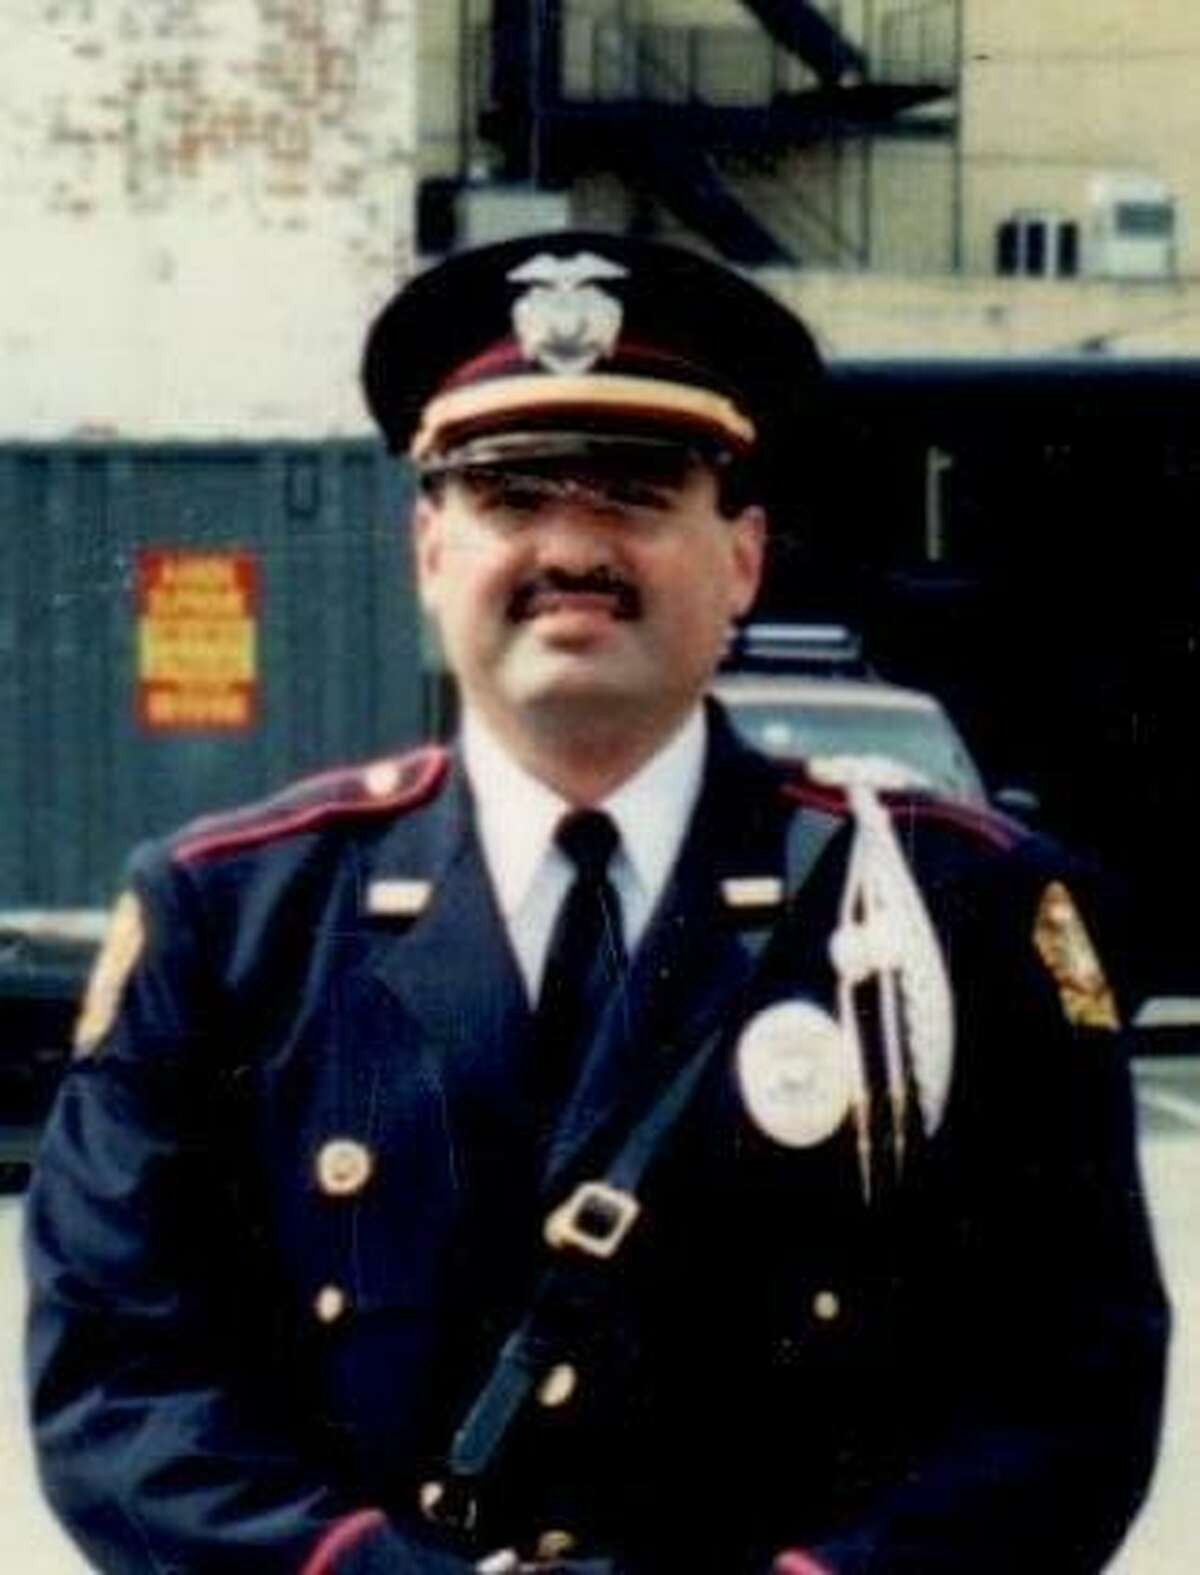 Antonio Rivera Jr., a 20-year-member of the Greenwich Police Department, died Aug. 2.